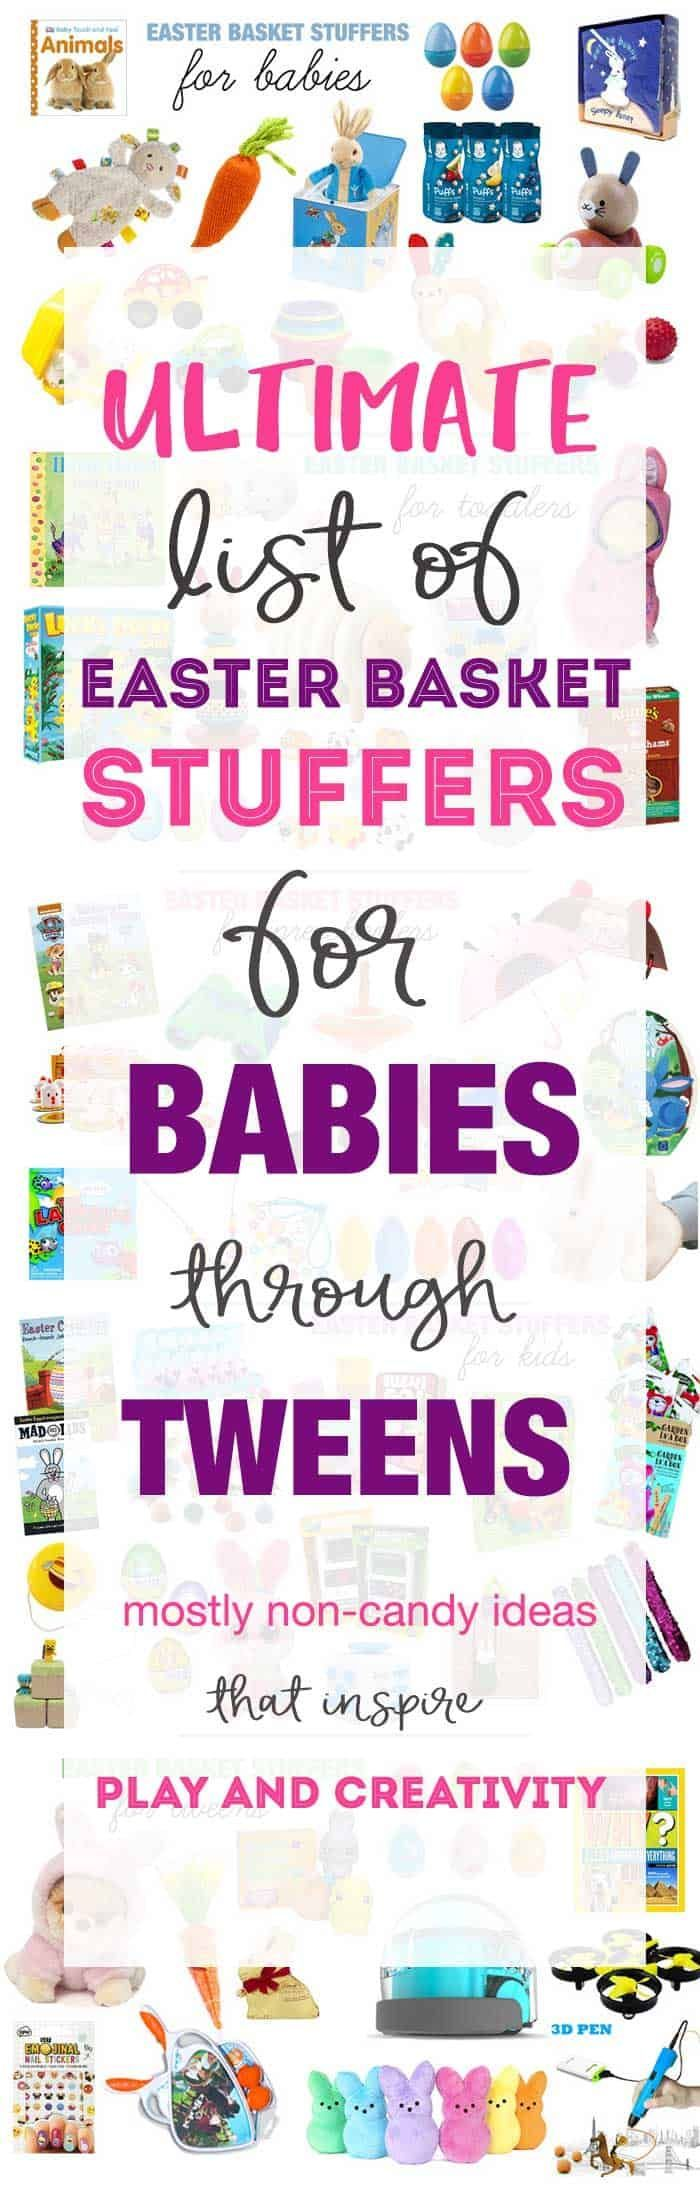 75 Fun Easter Basket Stuffers Ideas for Every Age 75 Fun Easter Basket Stuffers Ideas for Every Age  Mustsee list of Easter basket stuffers ideas for babies toddlers pres...